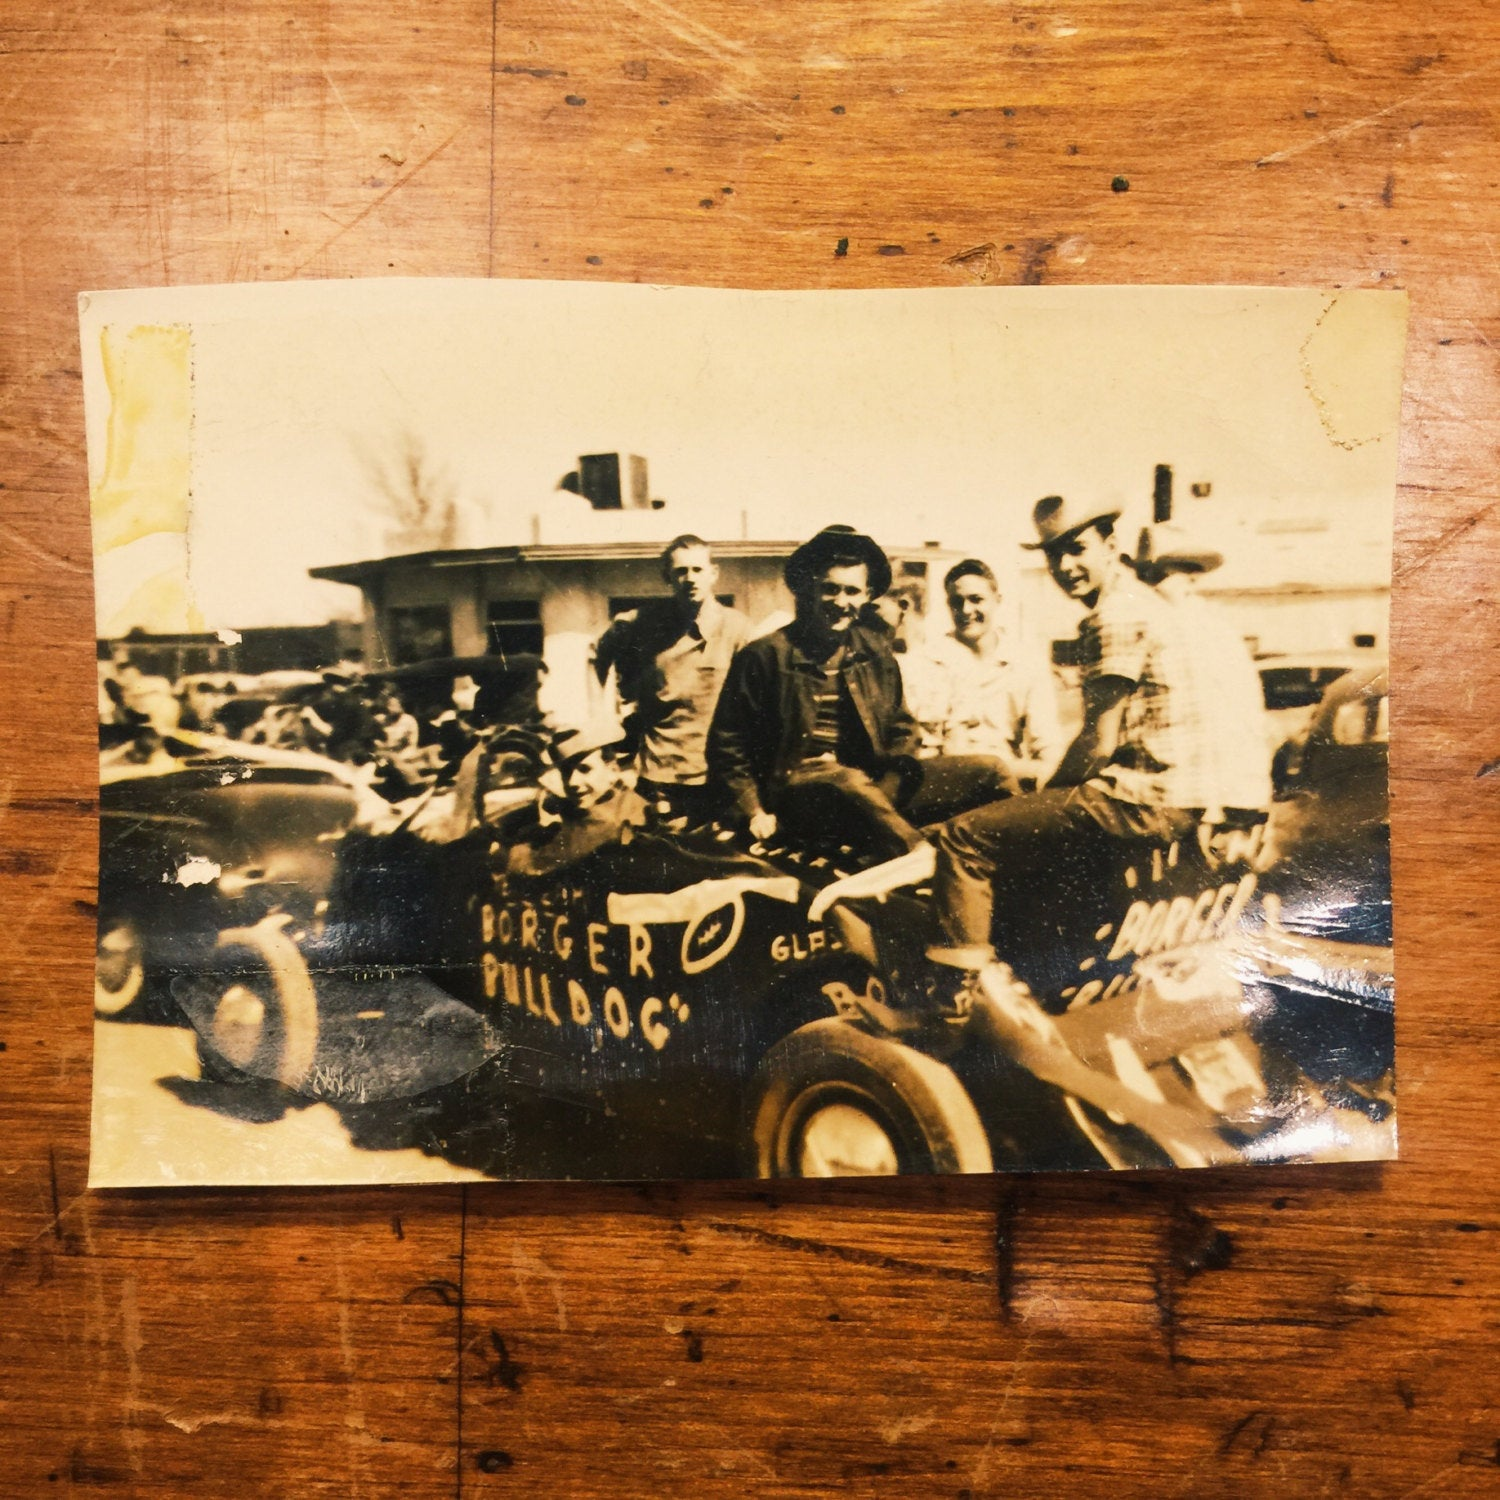 Antique Rat Rod Photograph - Texas - 1940s - Sepia - Coupe - Selvedge Jeans - Boots - Bulldog - Hipster -Denim